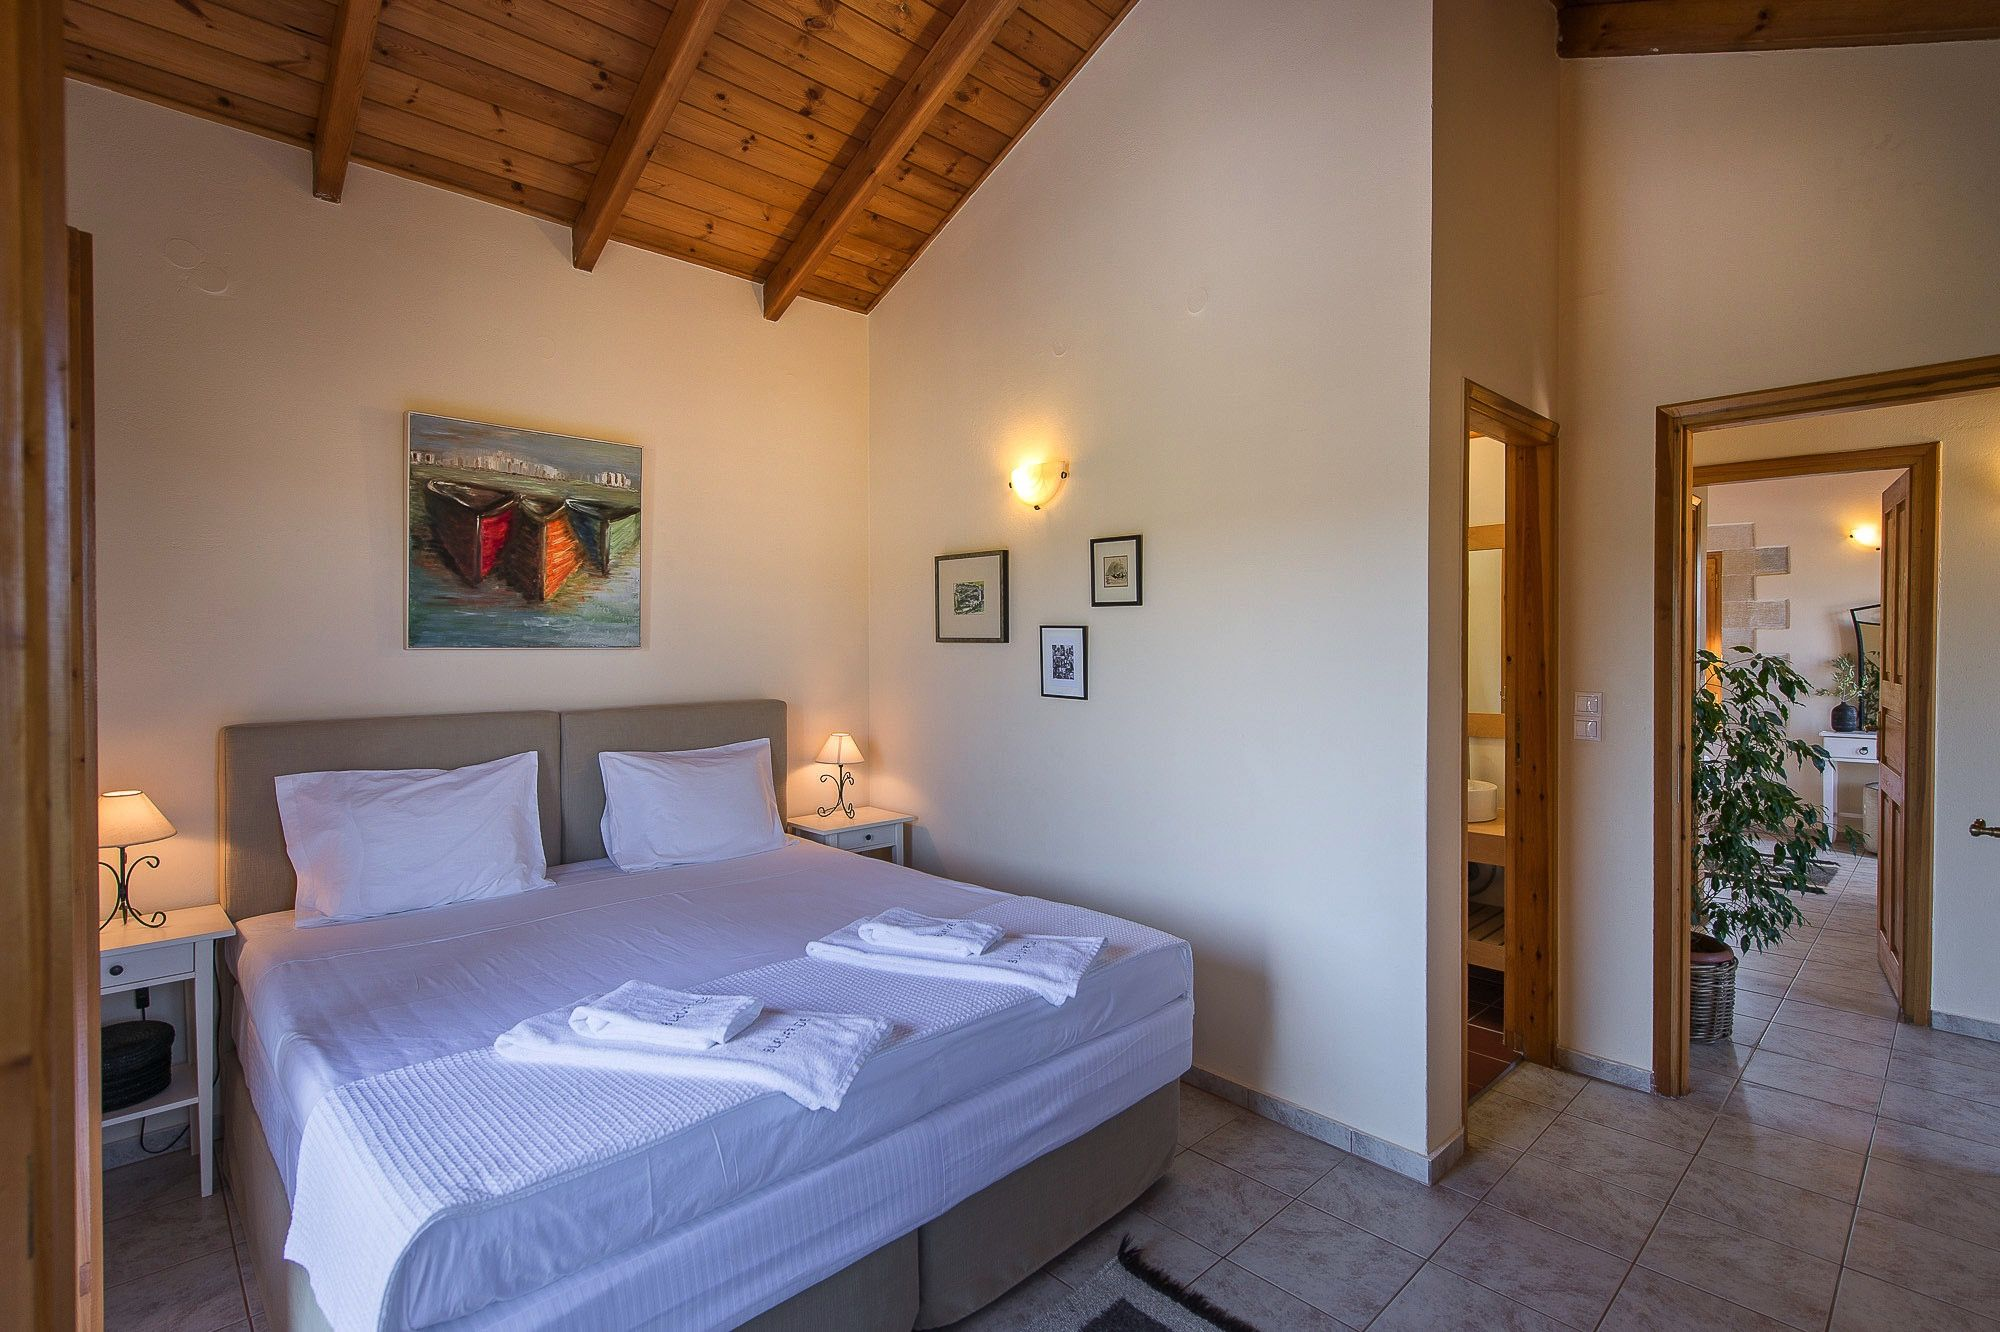 Villa Elia a private luxury villa with breathtaking views in the island of Crete. Only a short walk from Gavalochori village. A stone made house nested in olive groves following local tradition and equipped with high end amenities for a luxurious stay. A secluded private swimming pool, full gardens and multiple terraces complete this picturesque villa. Bleverde is a quiet wonderful luxury holiday estate with breathtaking views. The ultimate country side luxury leisure  Luxury vacation…